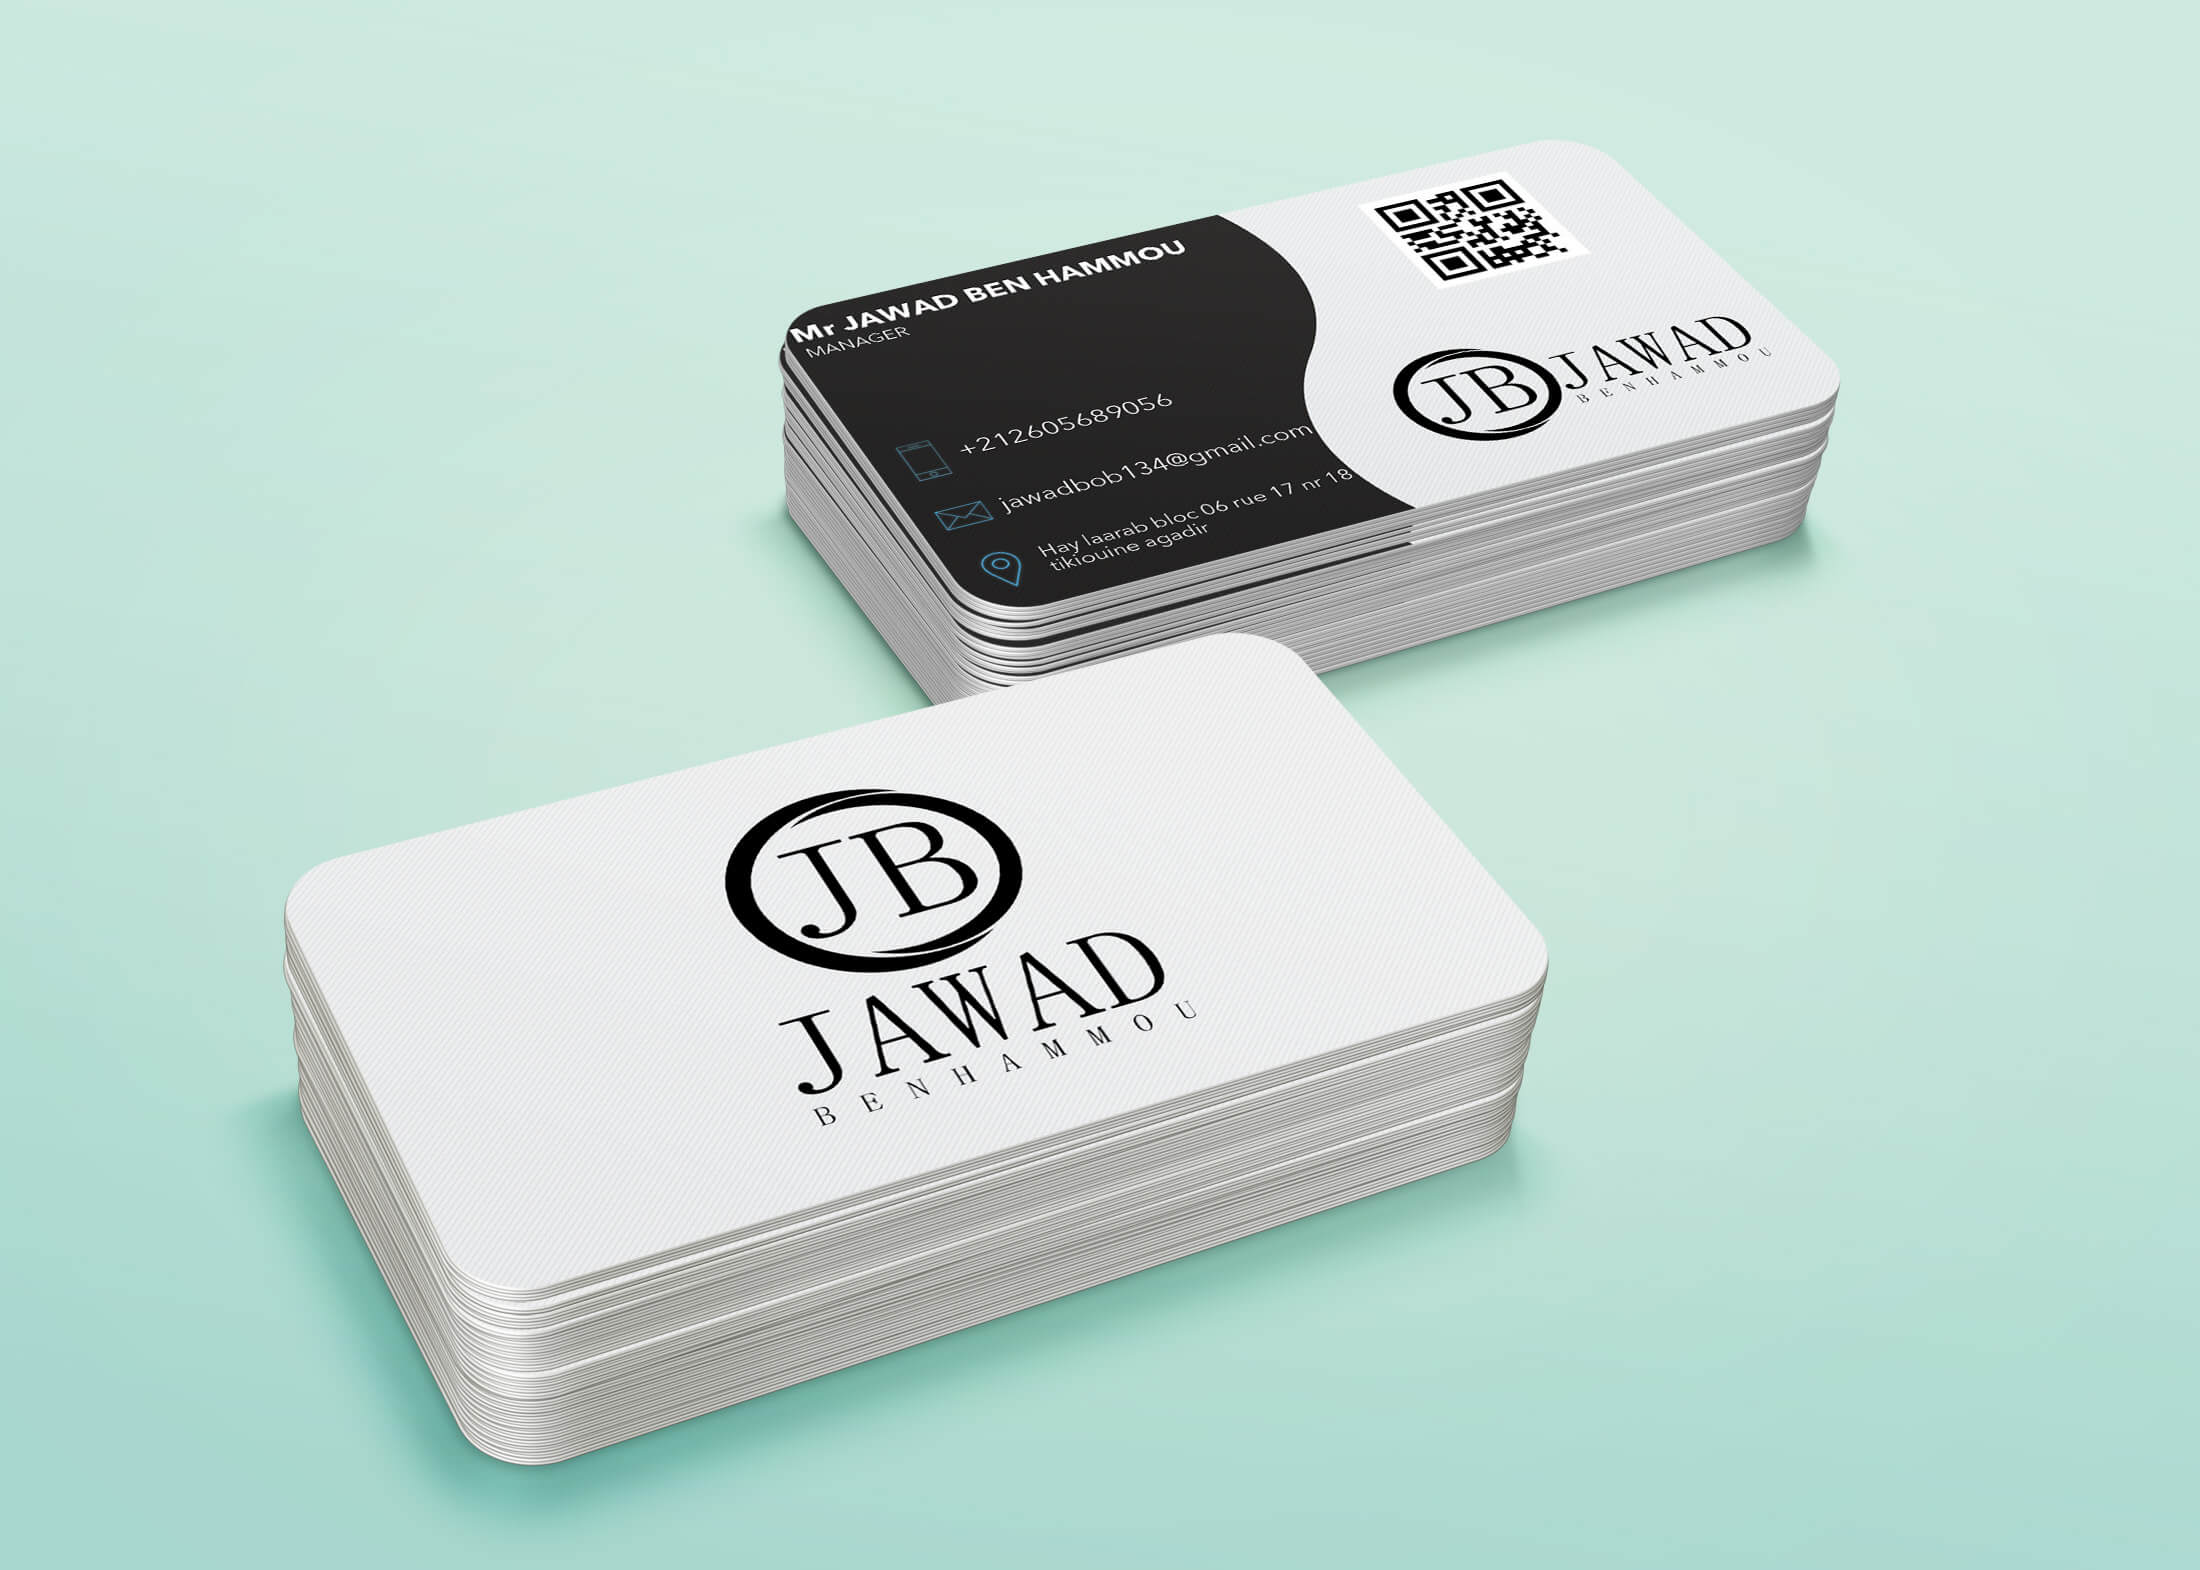 Print a personal card